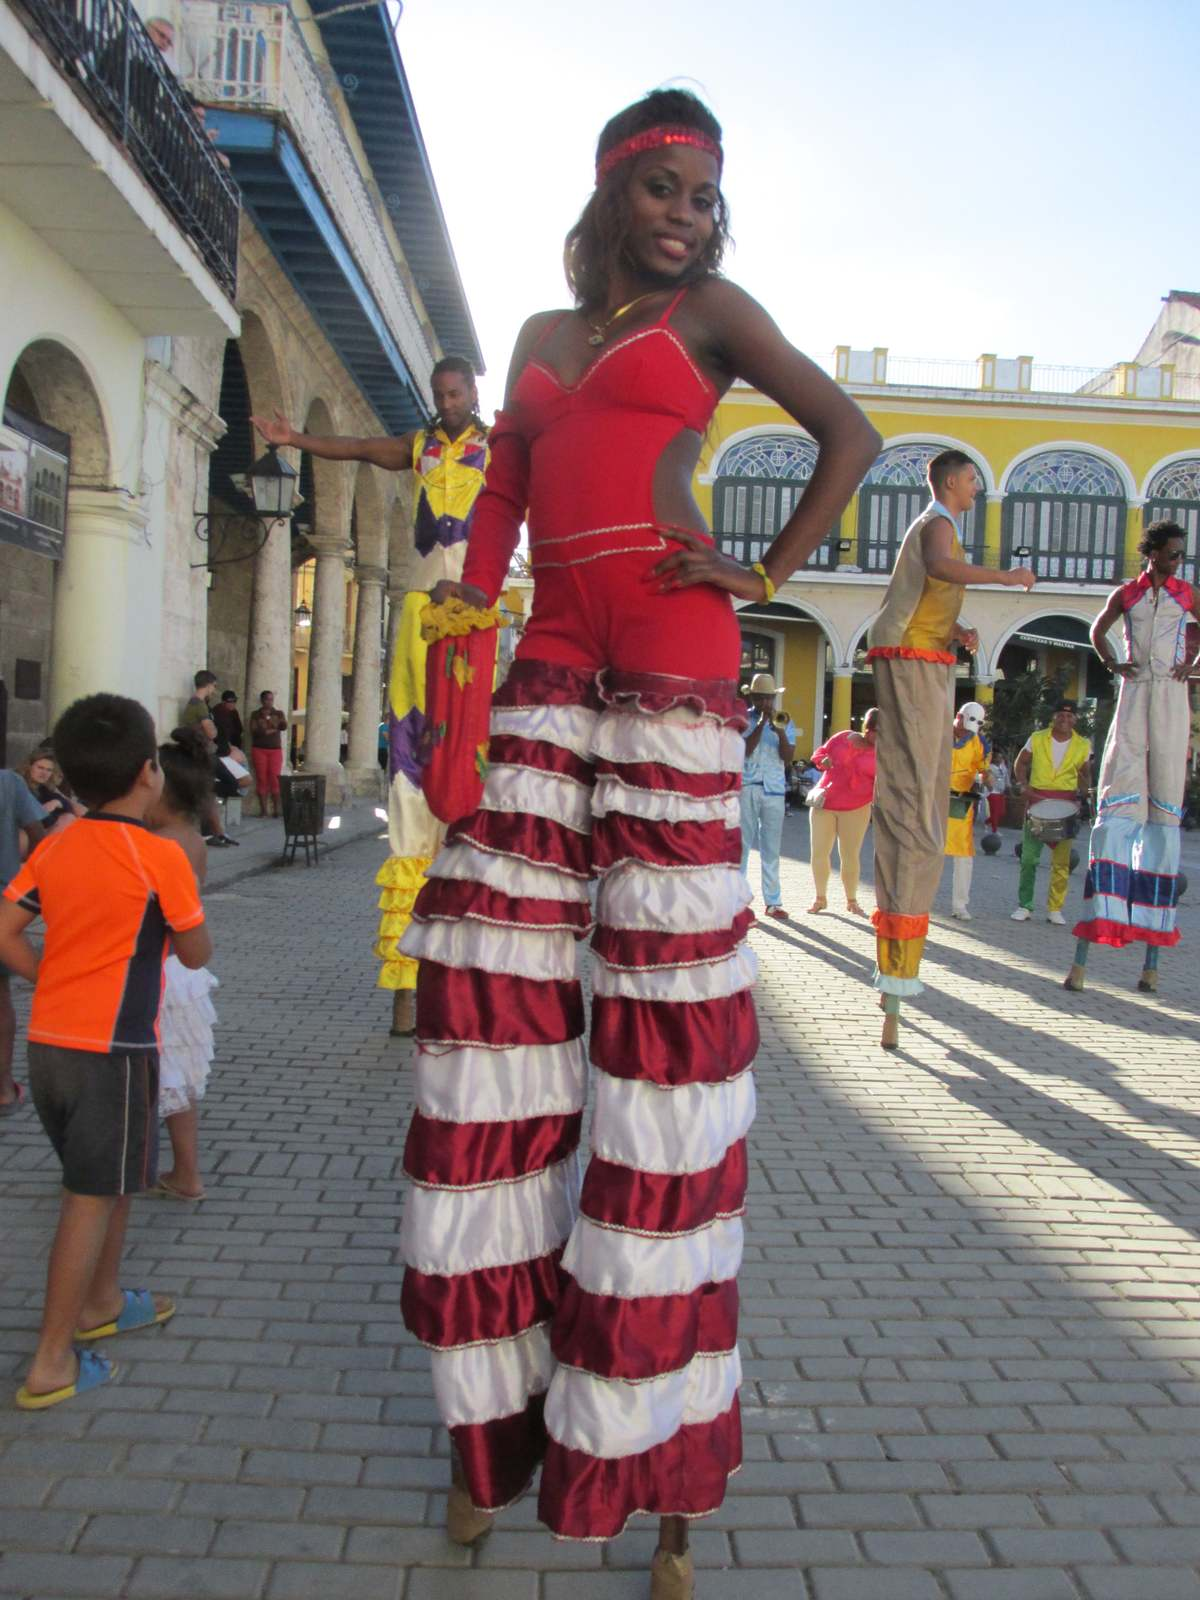 cuba_2016_877_street_entertainer_on_stilts